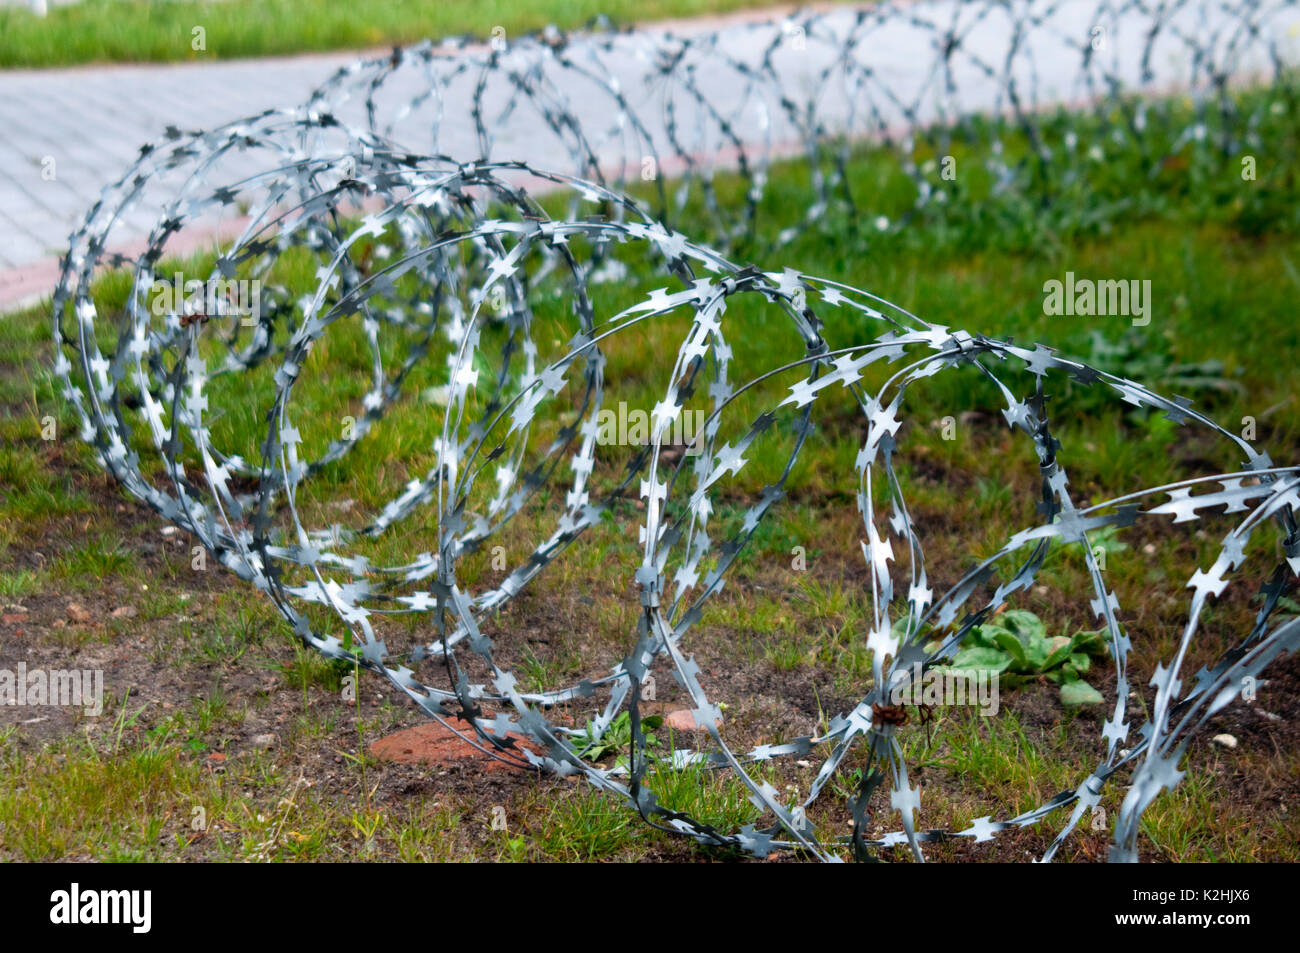 sophisticated High Resolution Chicken Wire Gallery - Diagram ...